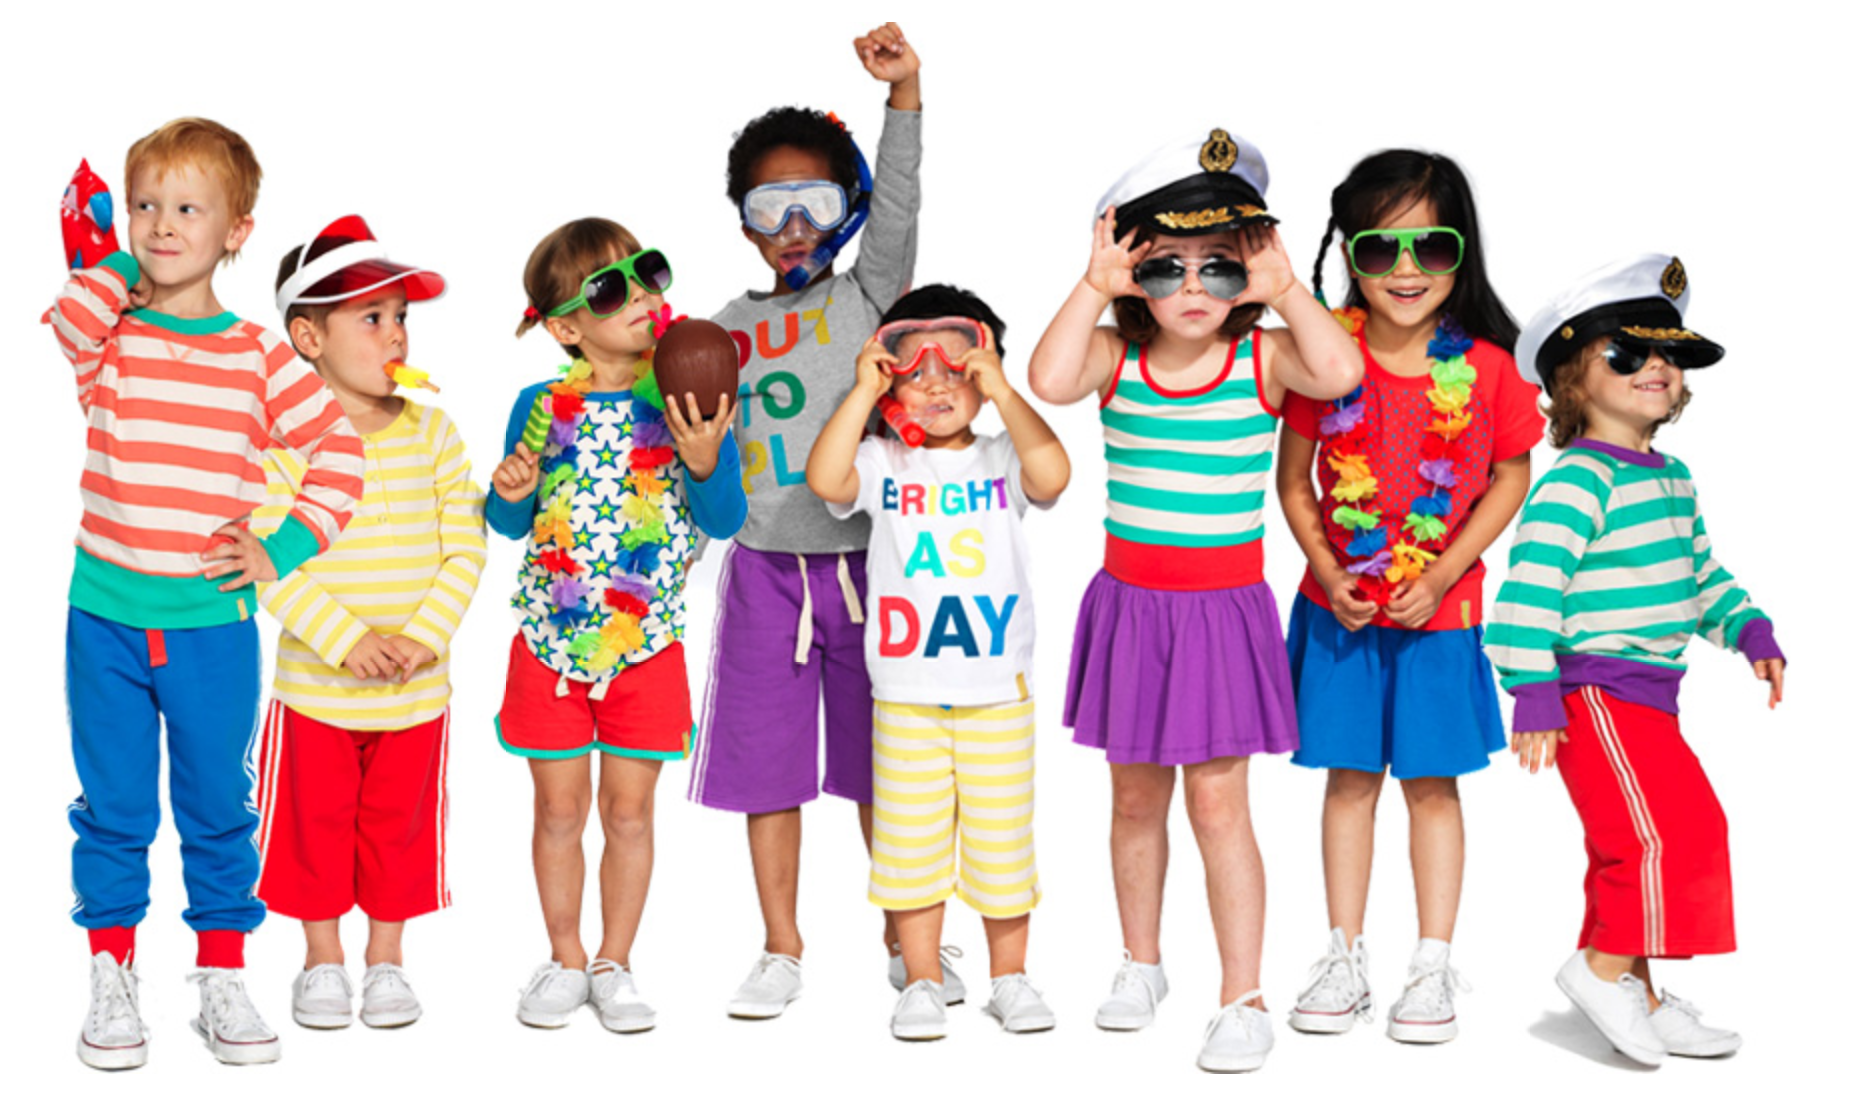 children hd png transparent children hd images. | pluspng